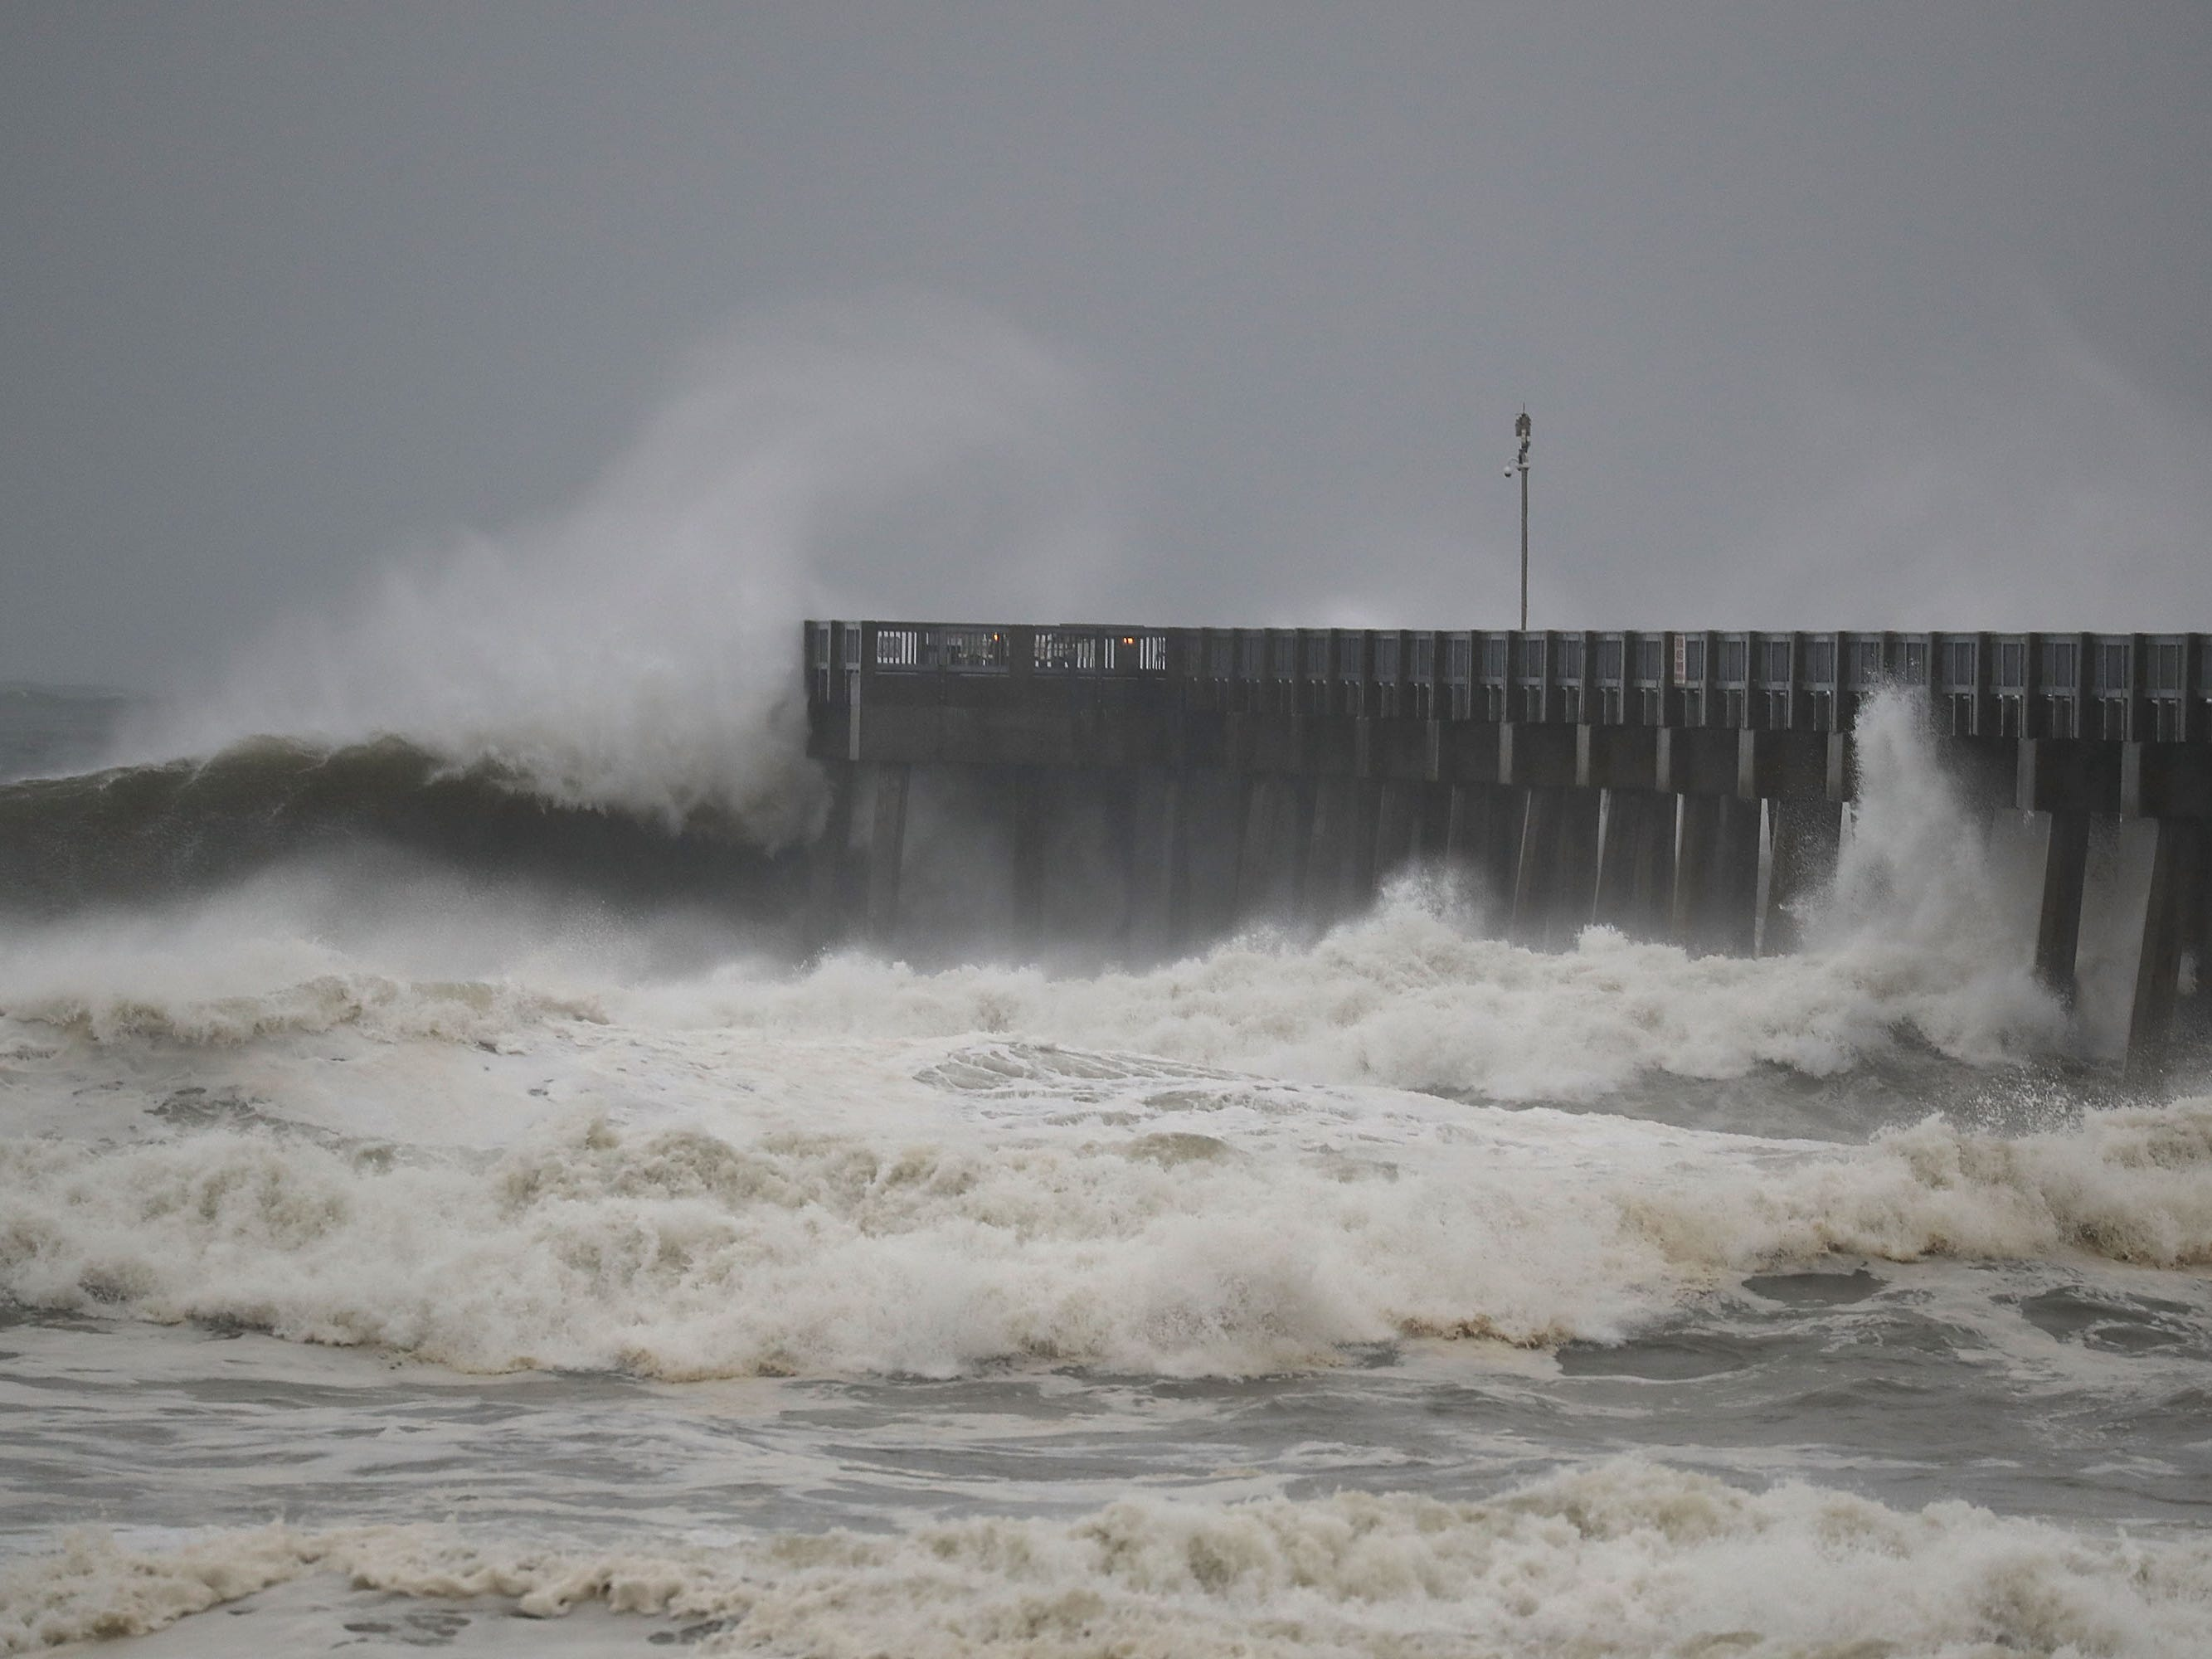 PANAMA CITY BEACH, FL - OCTOBER 10:  Waves crash along a pier as the outerbands of  hurricane Michael arrive on October 10, 2018 in Panama City Beach, Florida. The hurricane is forecast to hit the Florida Panhandle at a possible category 4 storm.  (Photo by Joe Raedle/Getty Images) ORG XMIT: 775240672 ORIG FILE ID: 1048822148